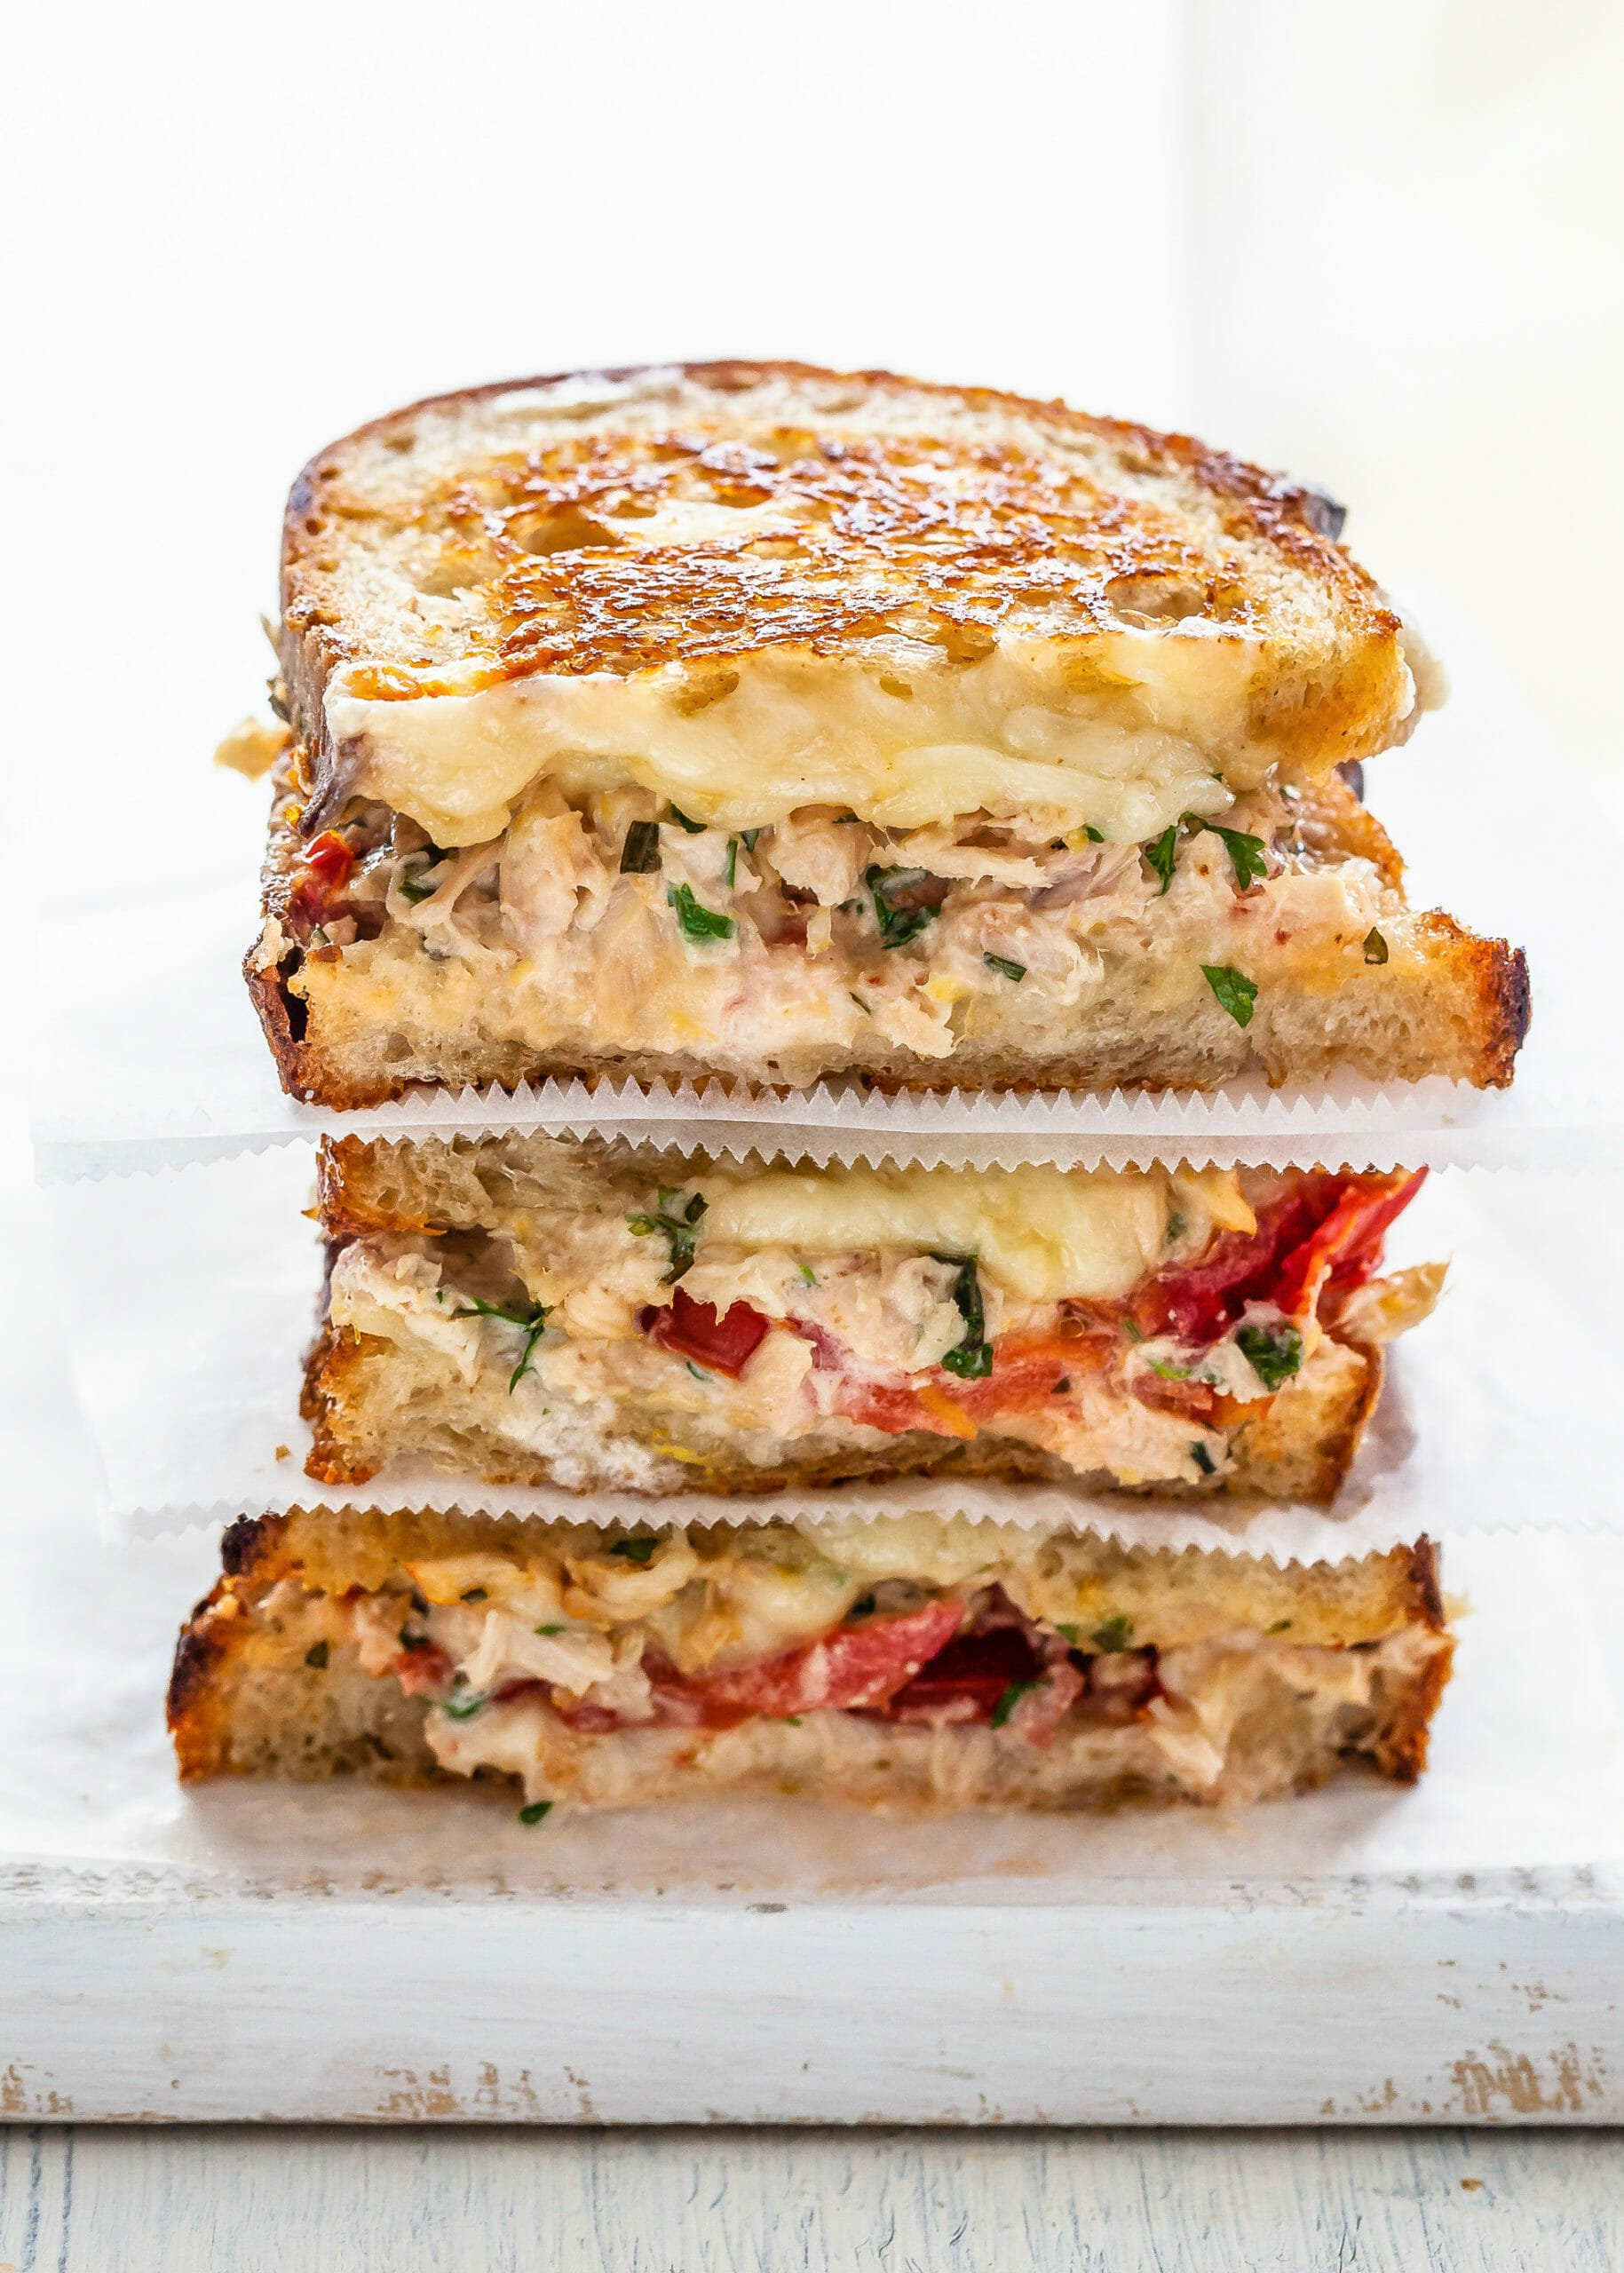 Tuna melt sandwich cut in half and stacked on top of each other. The bread is toasted and tuna, melted cheese and tomatoes are visible in the filling.